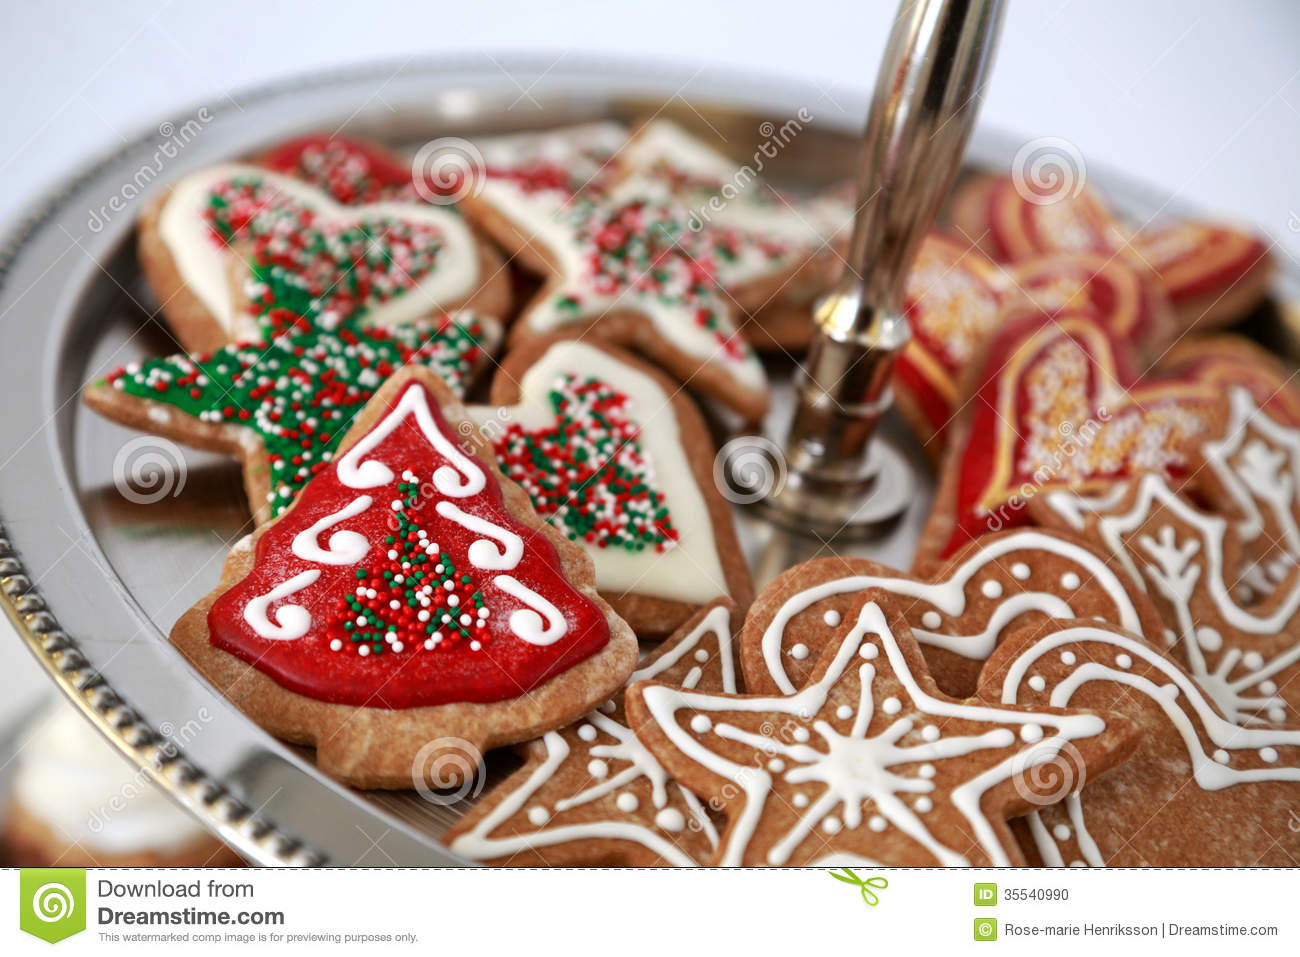 Gingerbread cookies decorated with icing for christmas